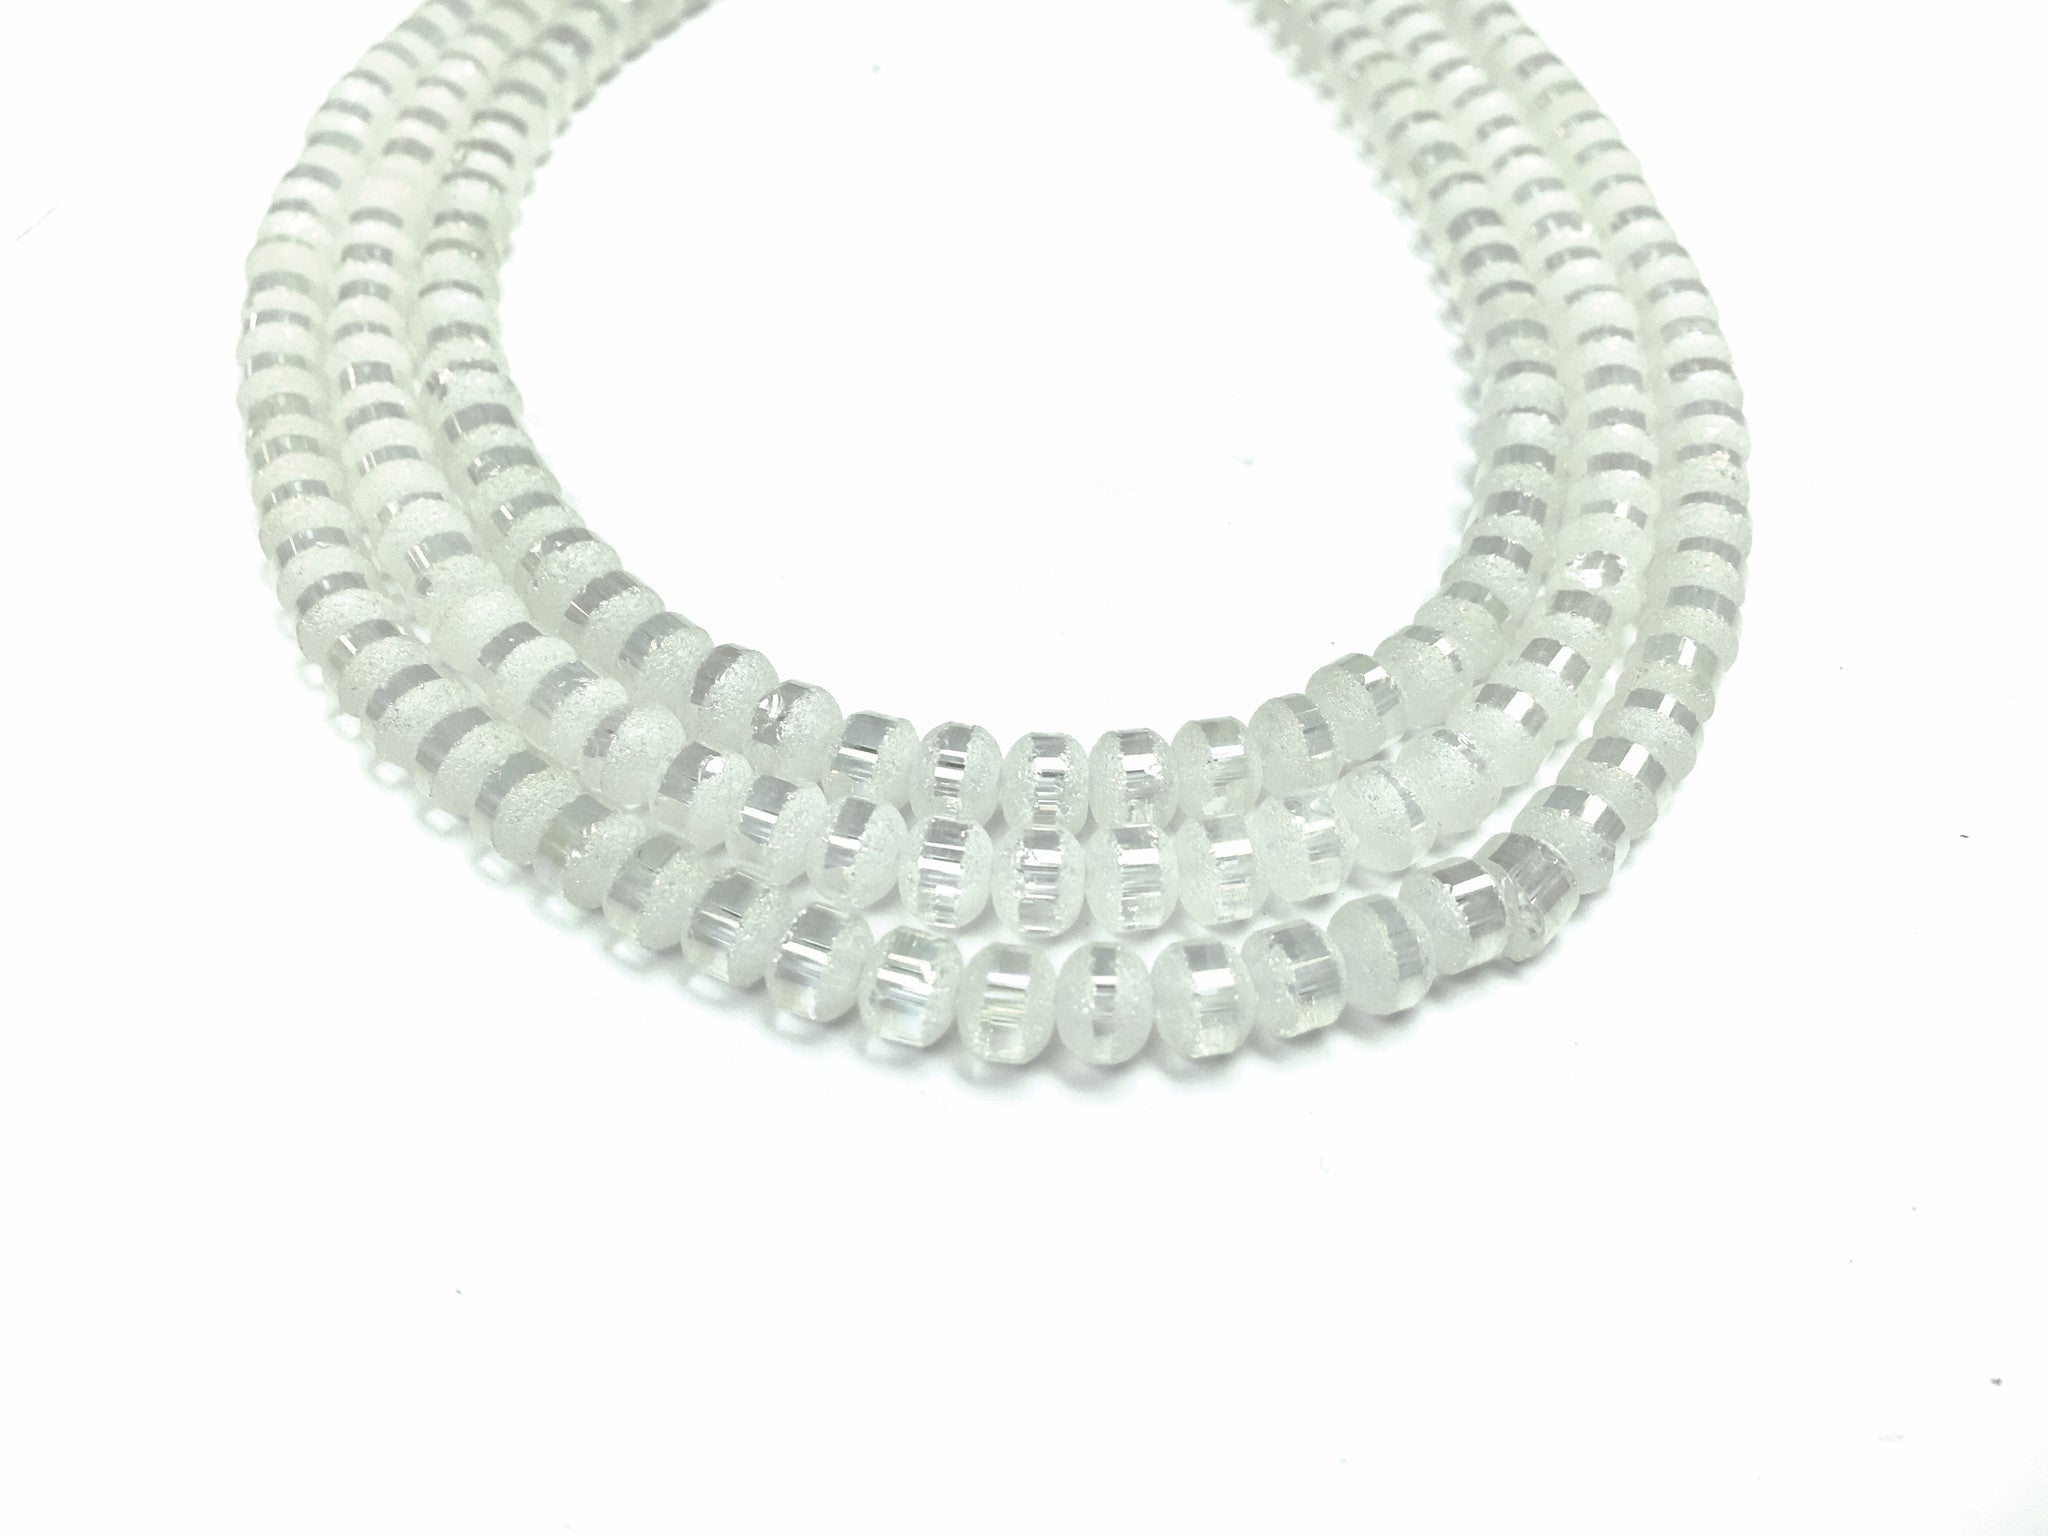 A&SB Crystal Orbits - 7x9mm Pale Matte Striped Rondelle Beads - 16 inch strand